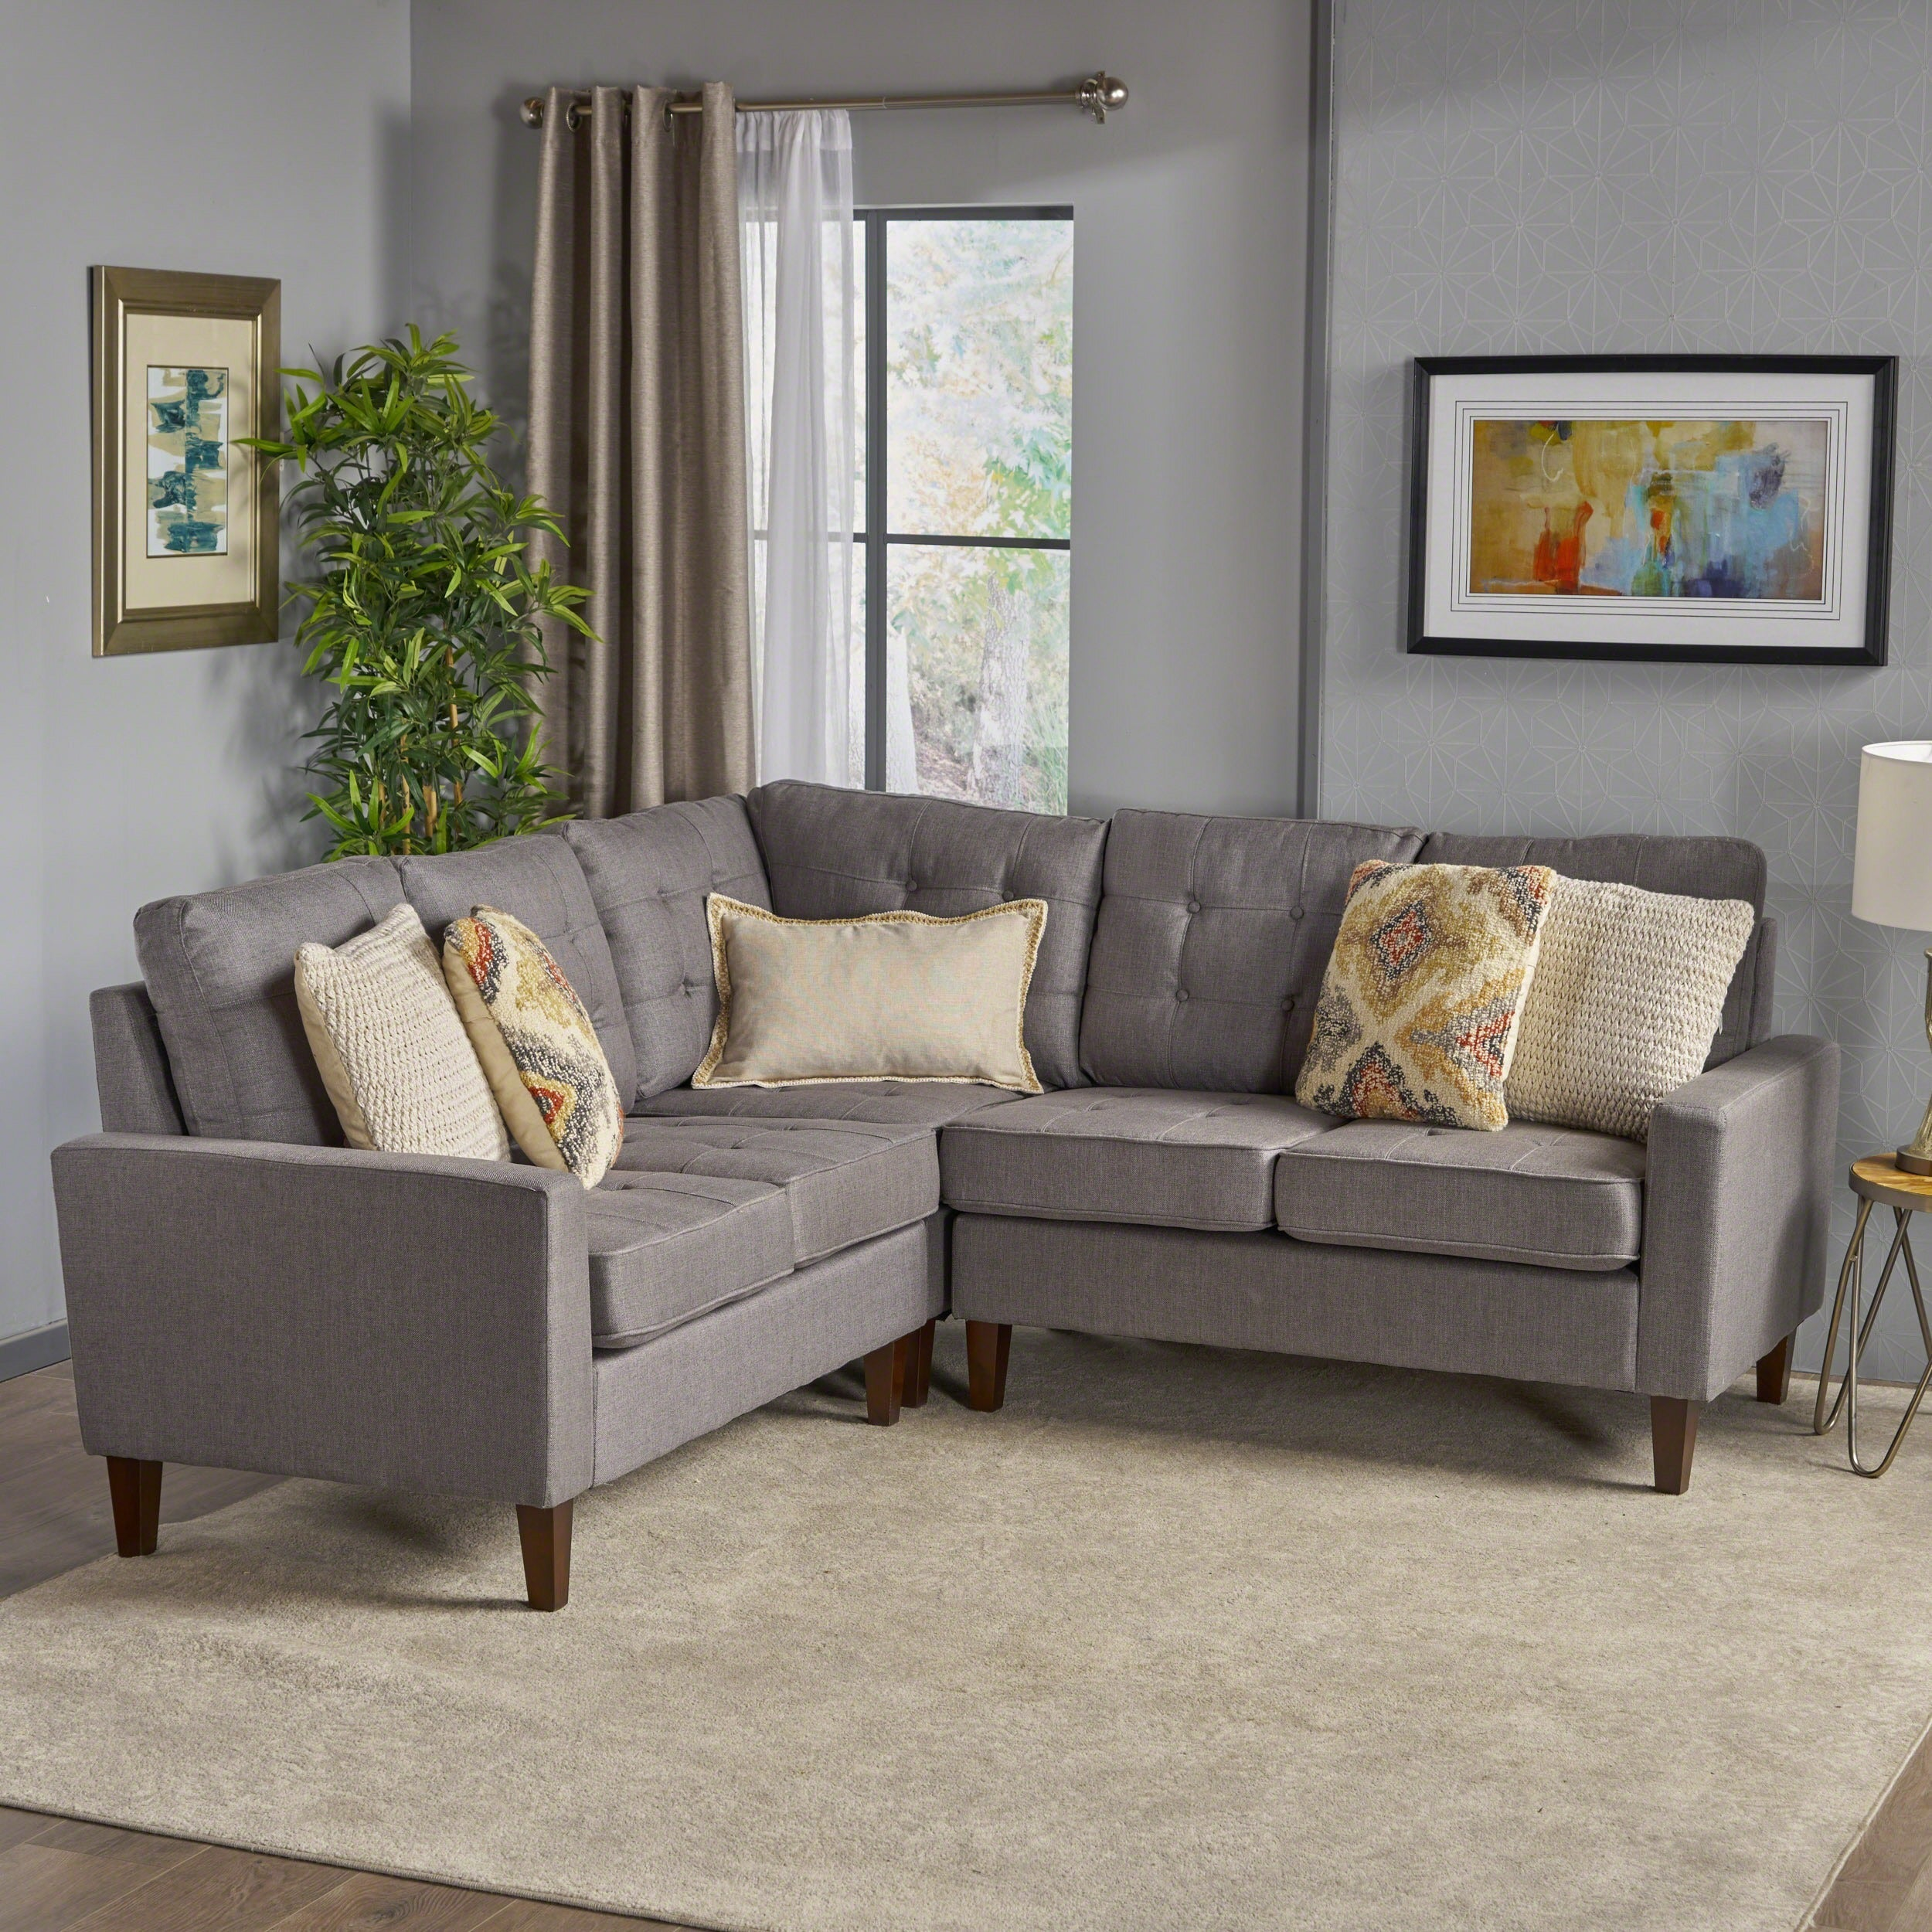 Nasir Mid Century Modern 3 Piece Sectional Sofa Set By